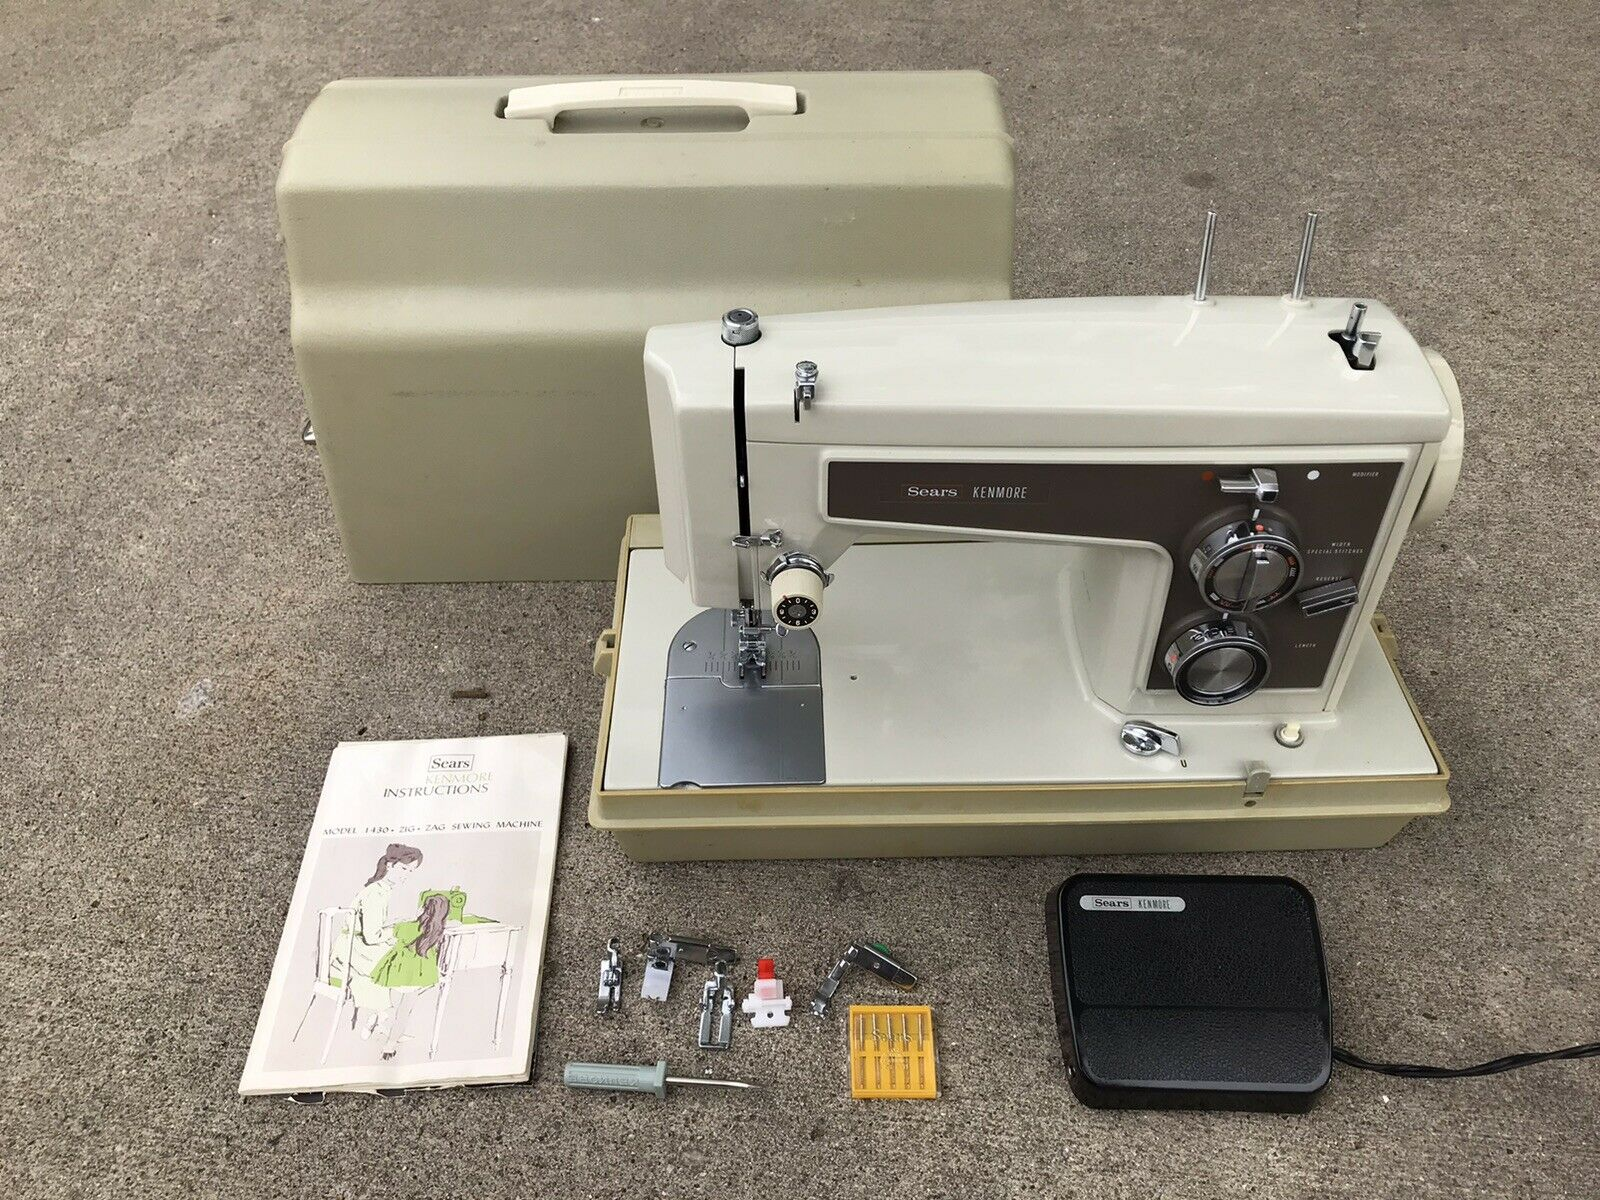 s l1600 - Sears Kenmore Sewing Machine 1430 w/Book, Accessories Case EXCELLENT